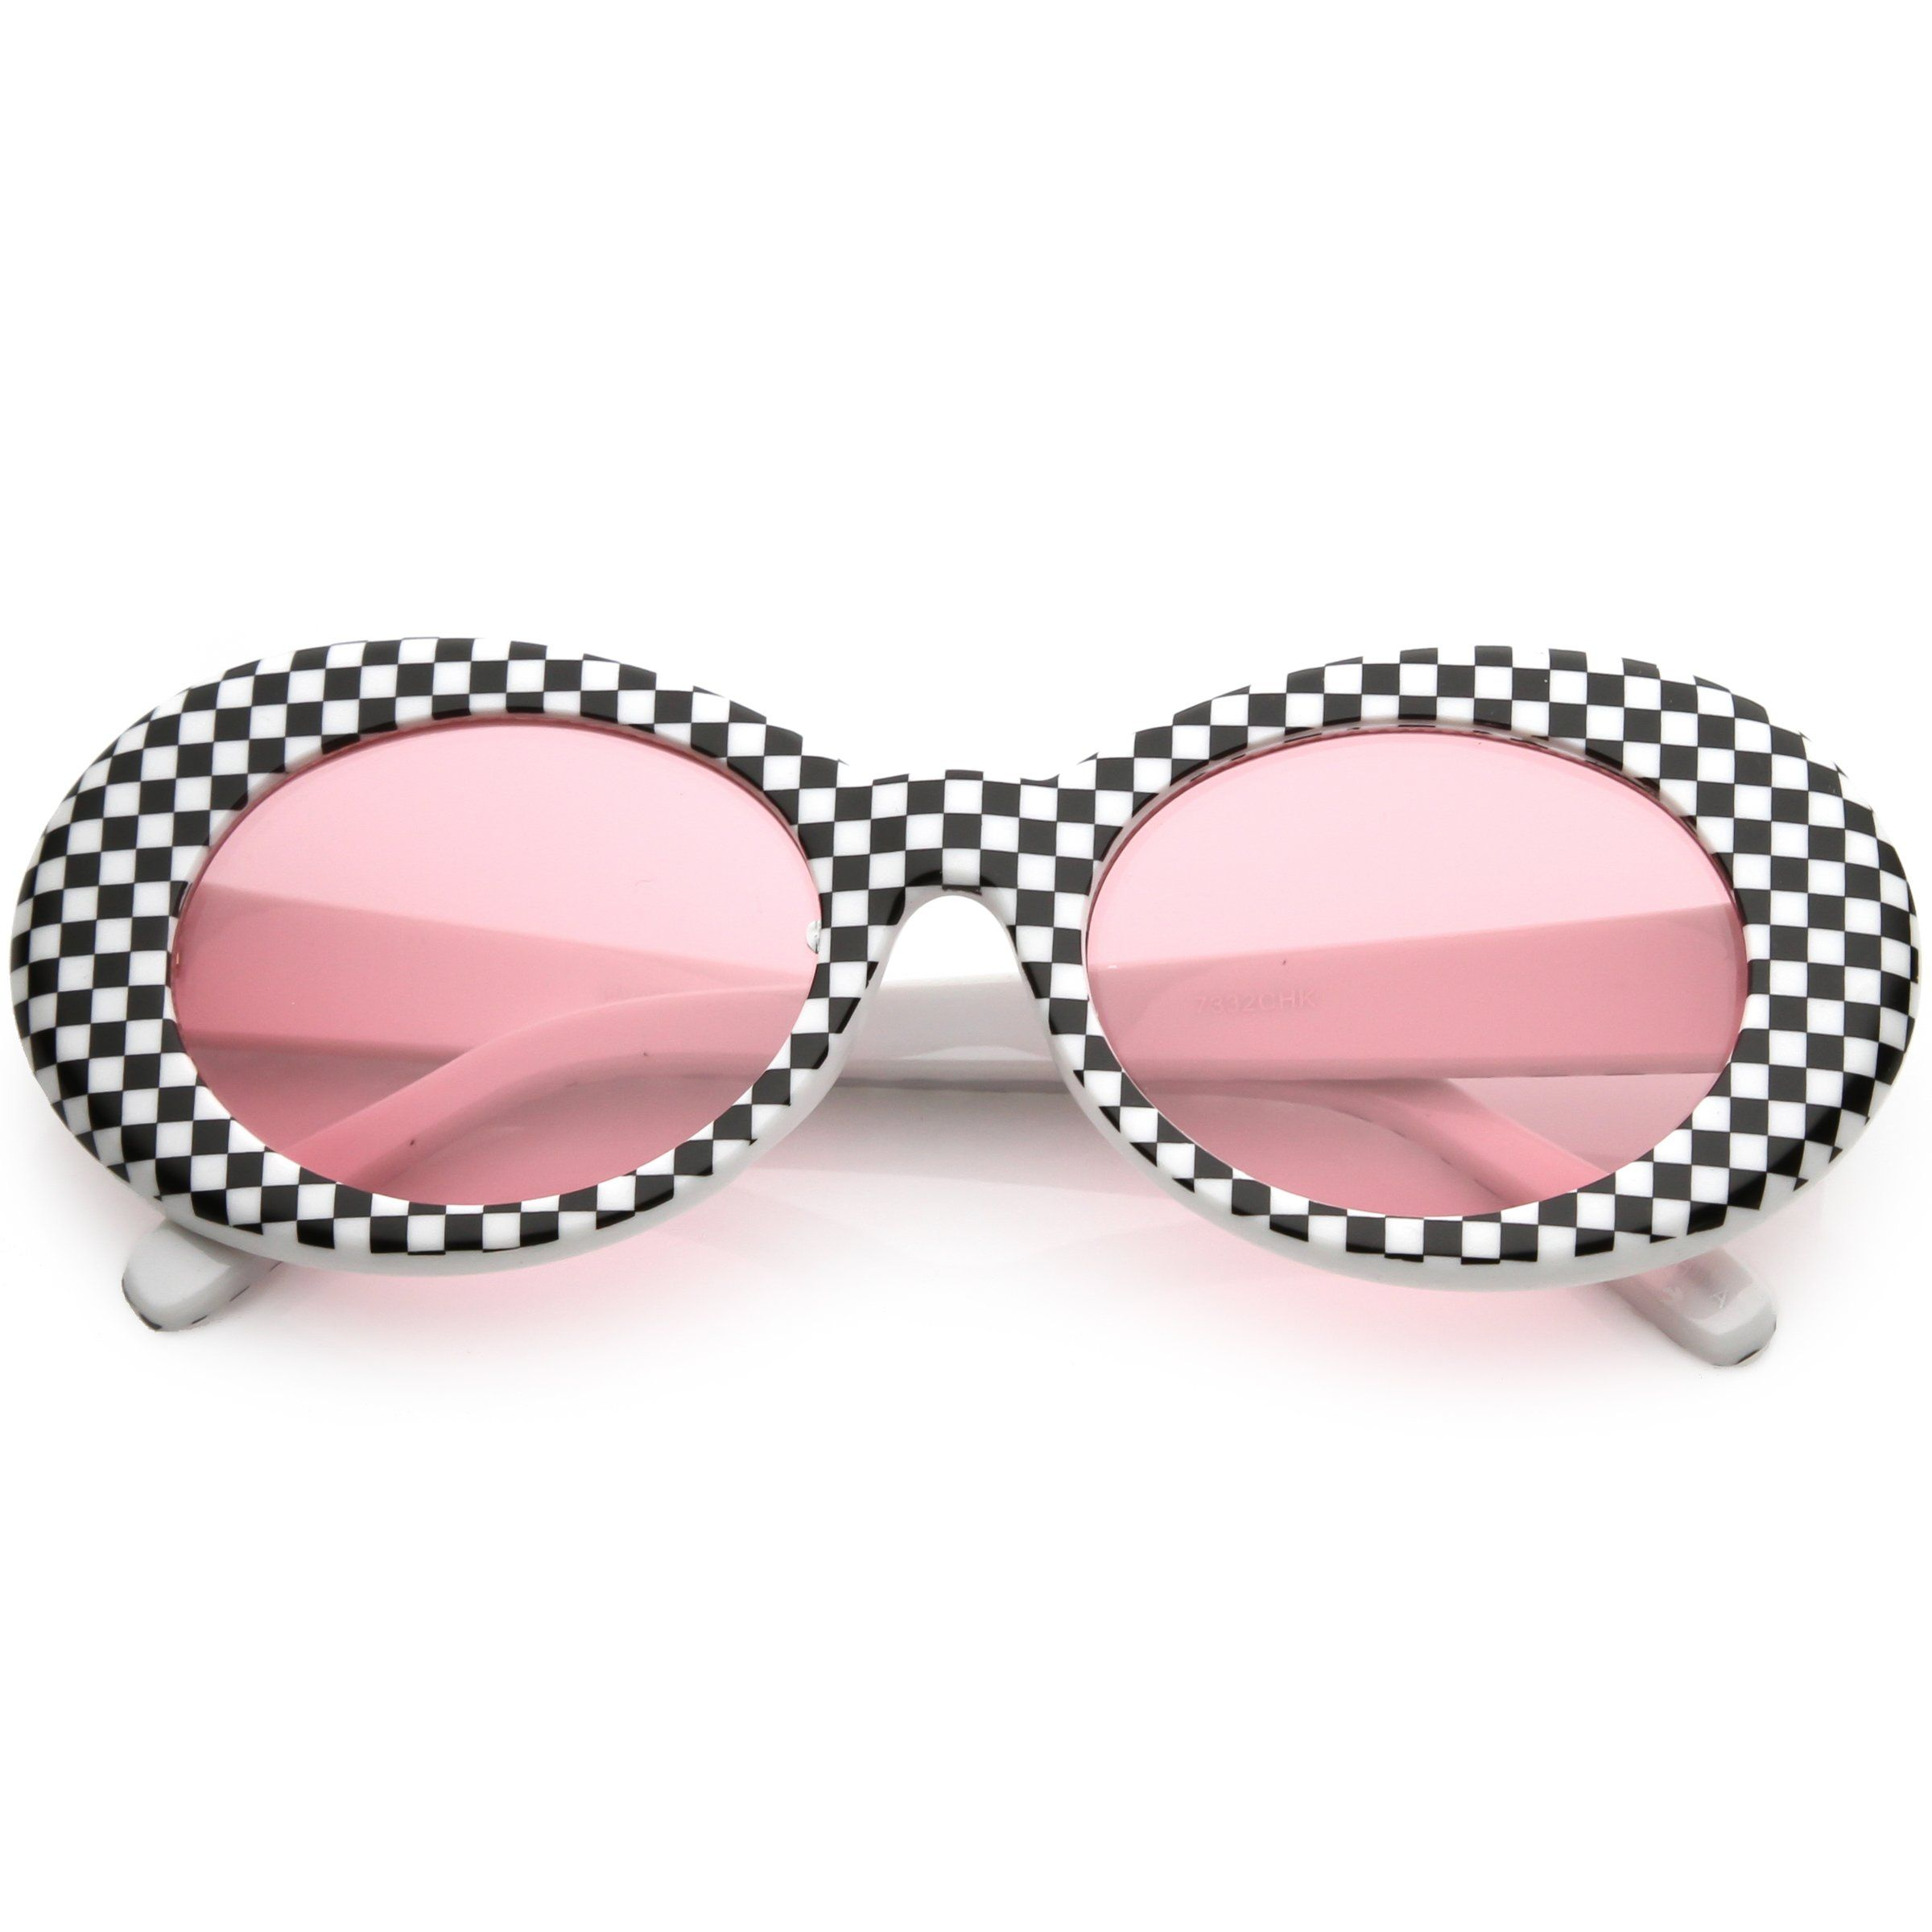 efb270d1b0778 Details about Retro 1990 s Rad Clout Goggle Checkered Colored Lens ...